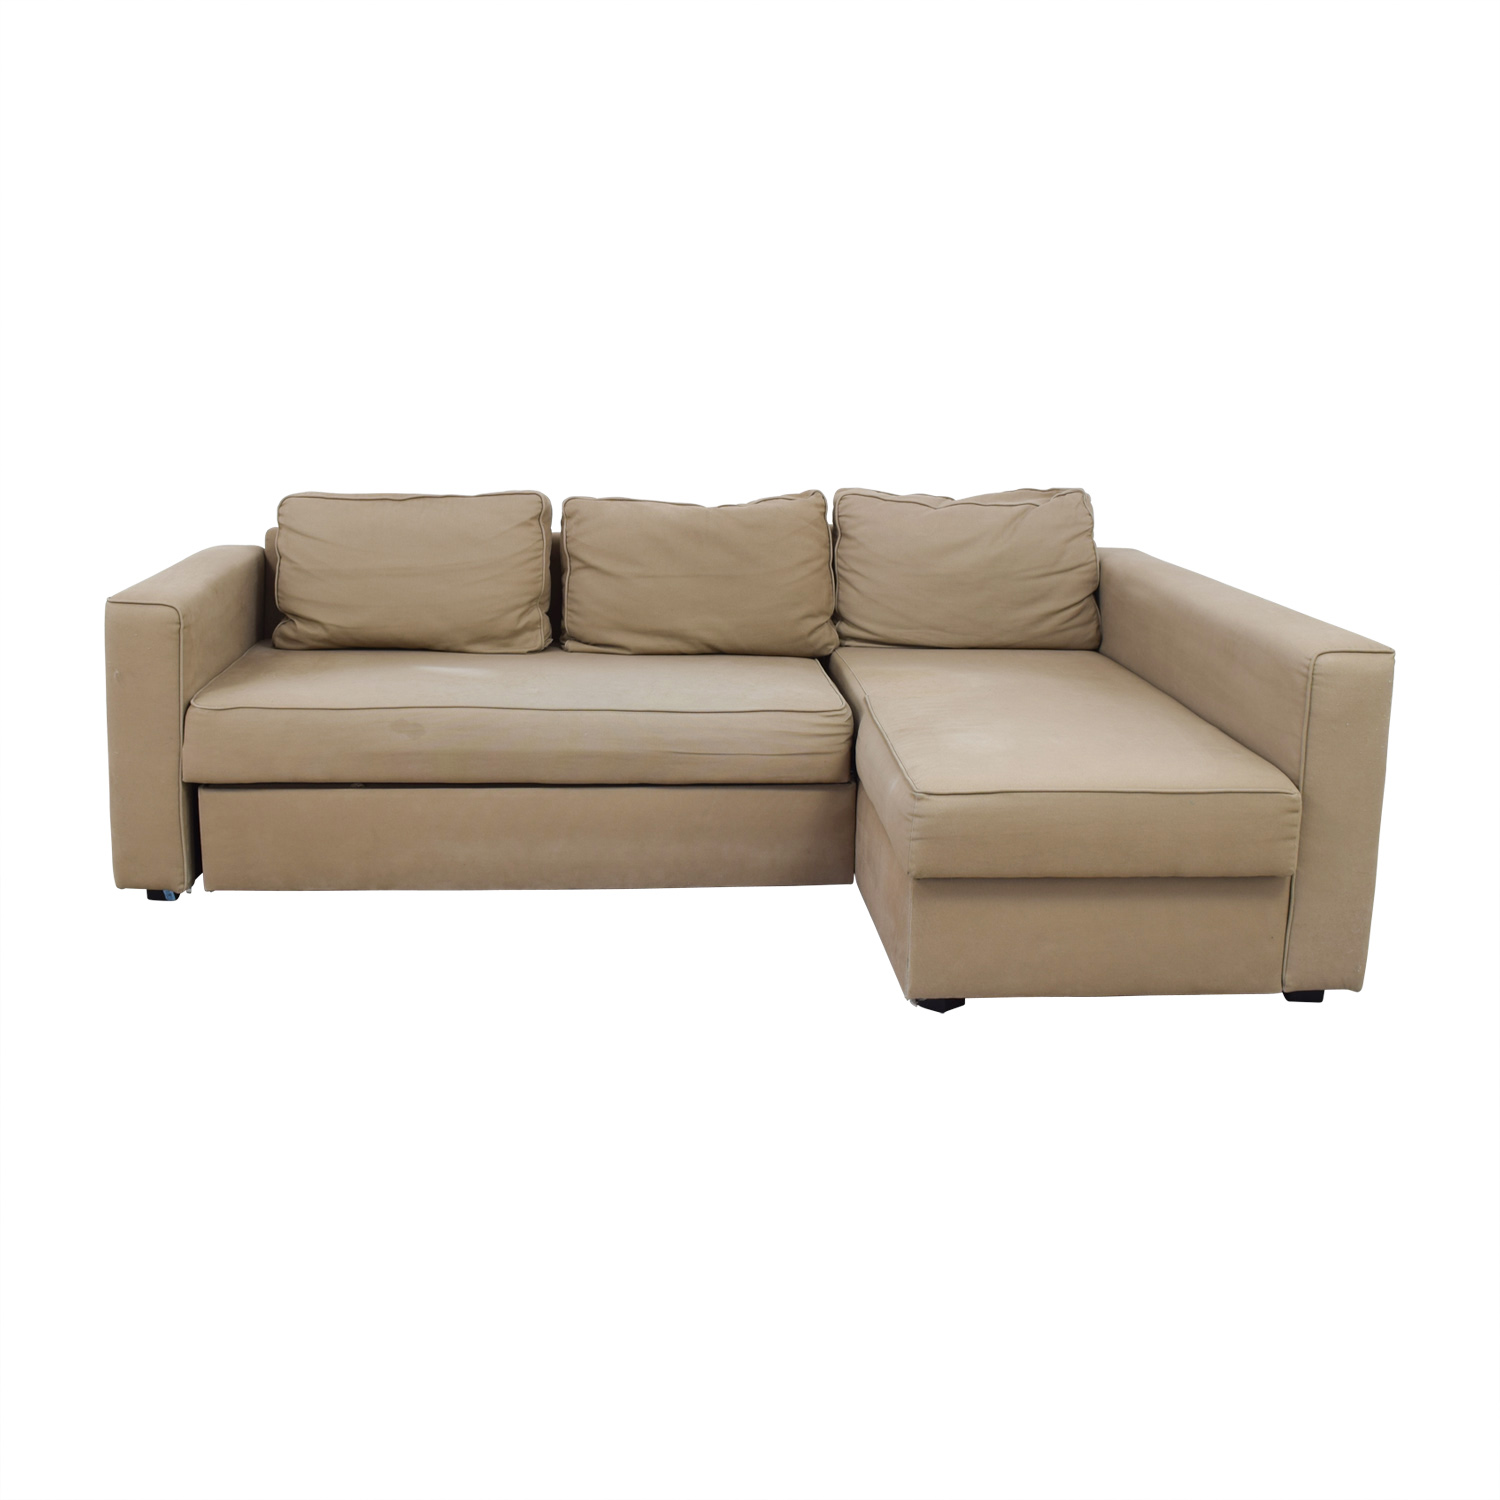 62 off ikea ikea manstad sectional sofa bed with storage sofas